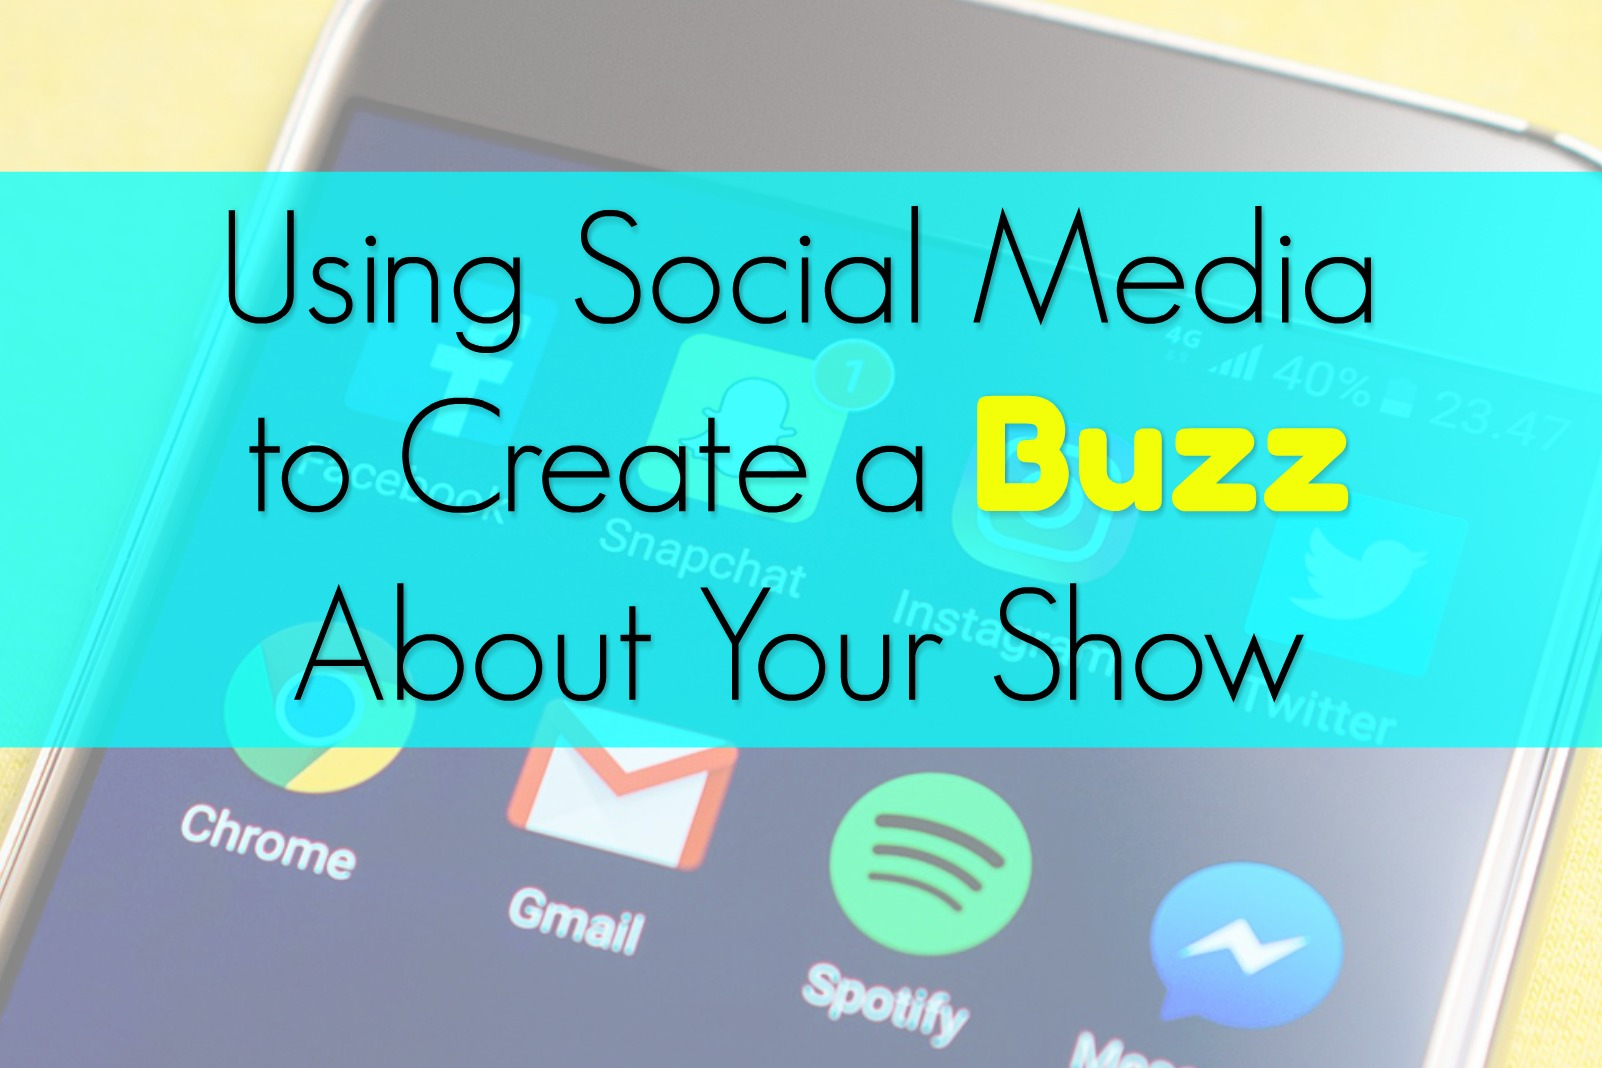 Using-Social-Media-To-Create-A-Buzz-About-Your-Show